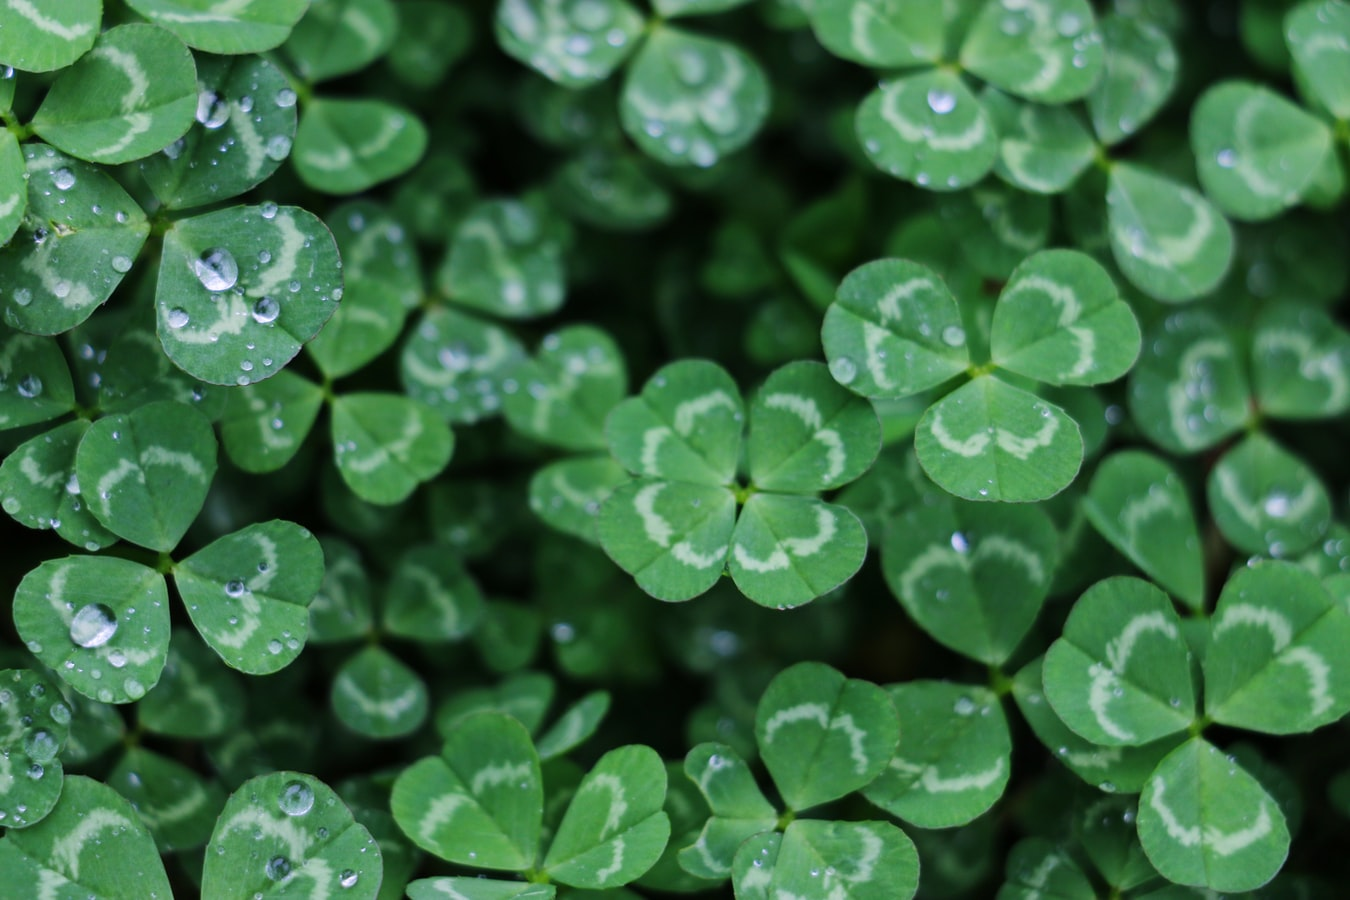 a four-leaf clover among other clovers